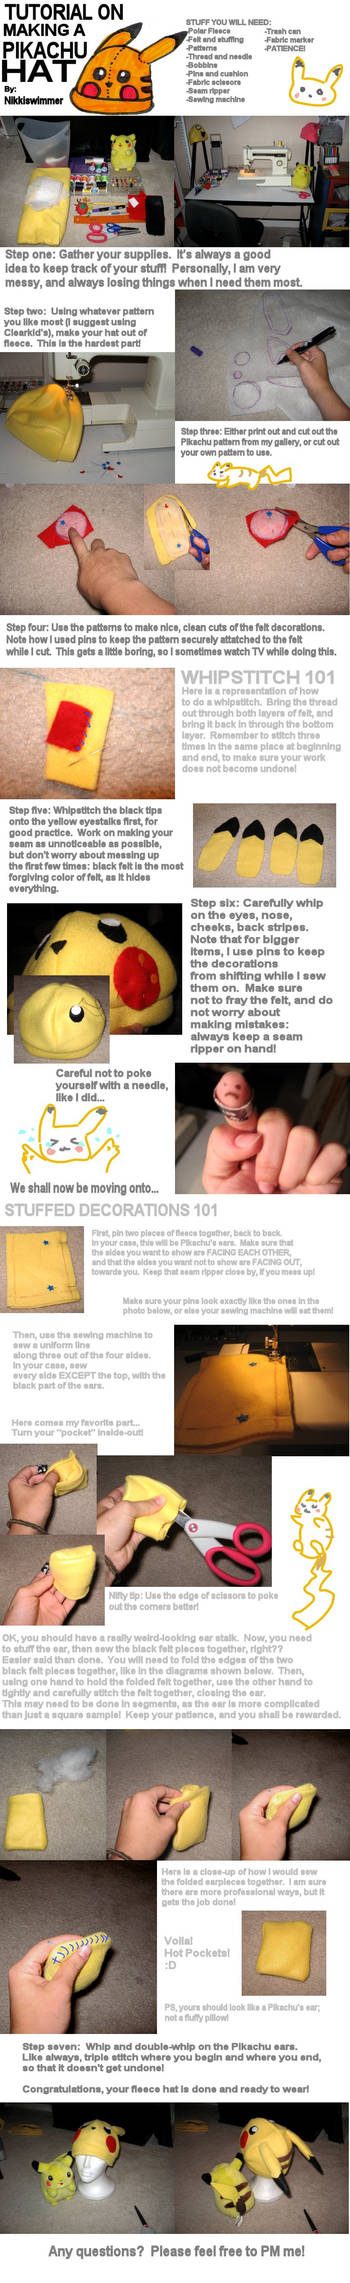 Pikachu Hat Tutorial by nikkiswimmer